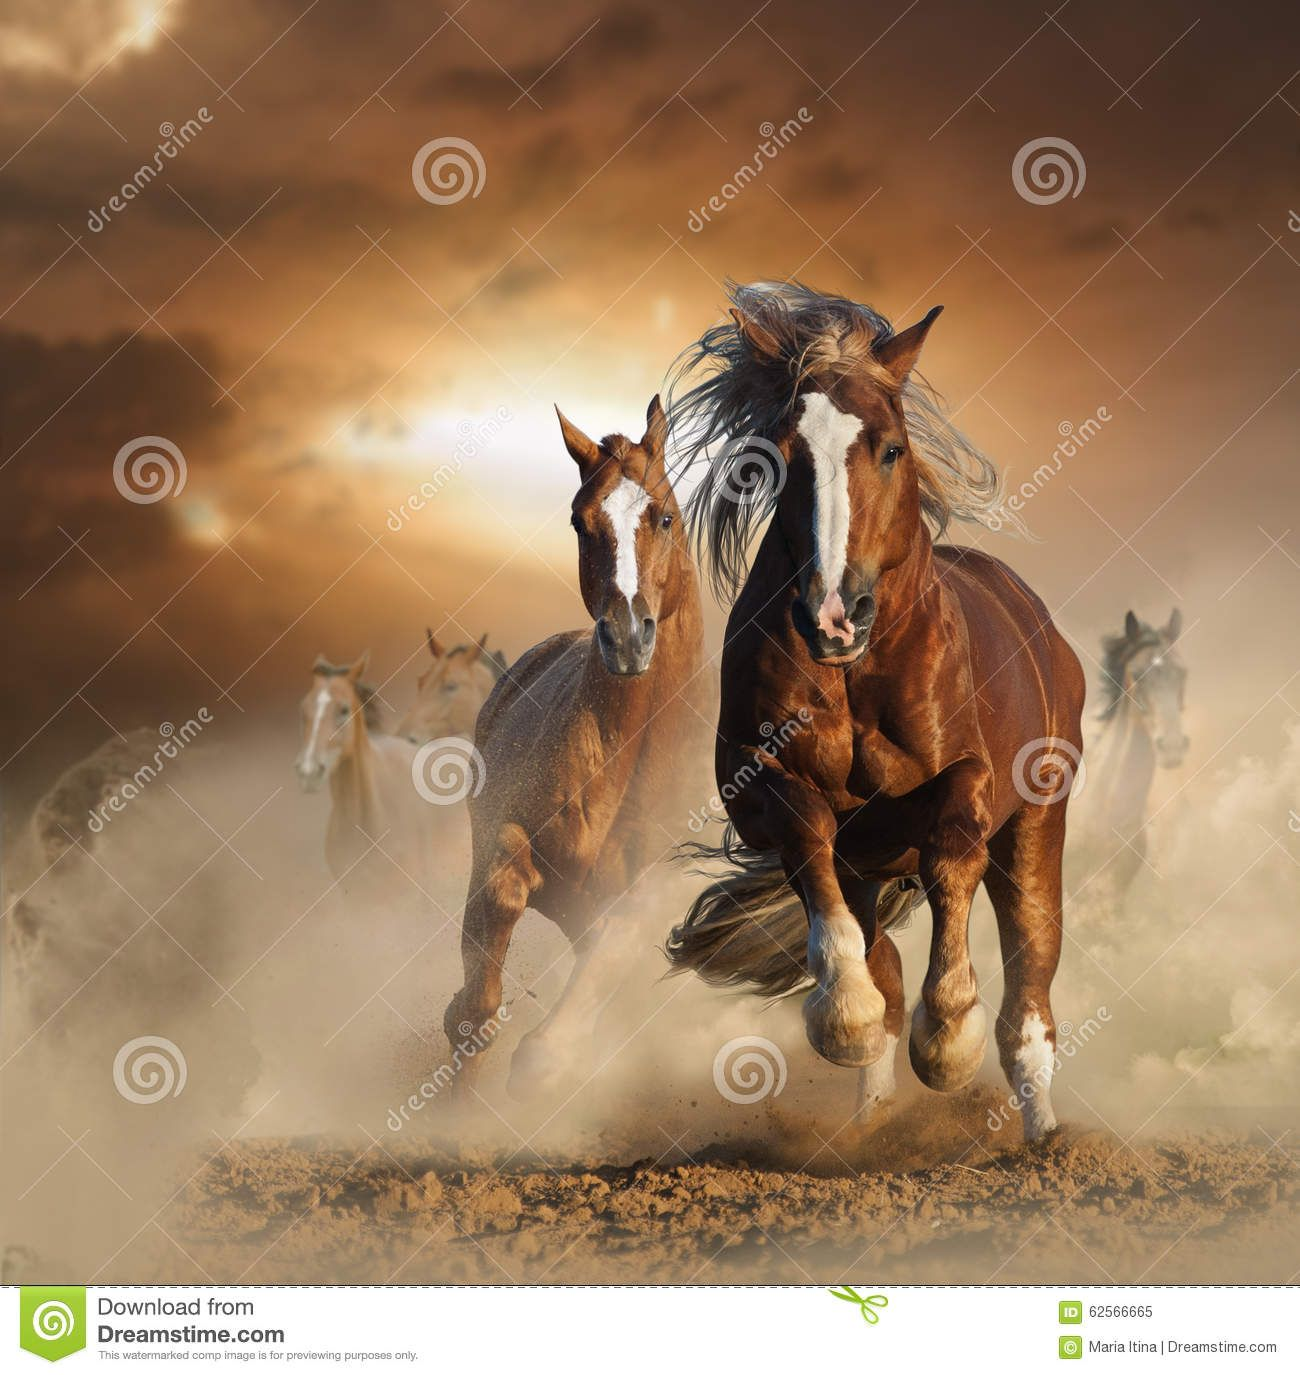 Two Wild Chestnut Horses Running Together In Dust Stock ... - photo#27